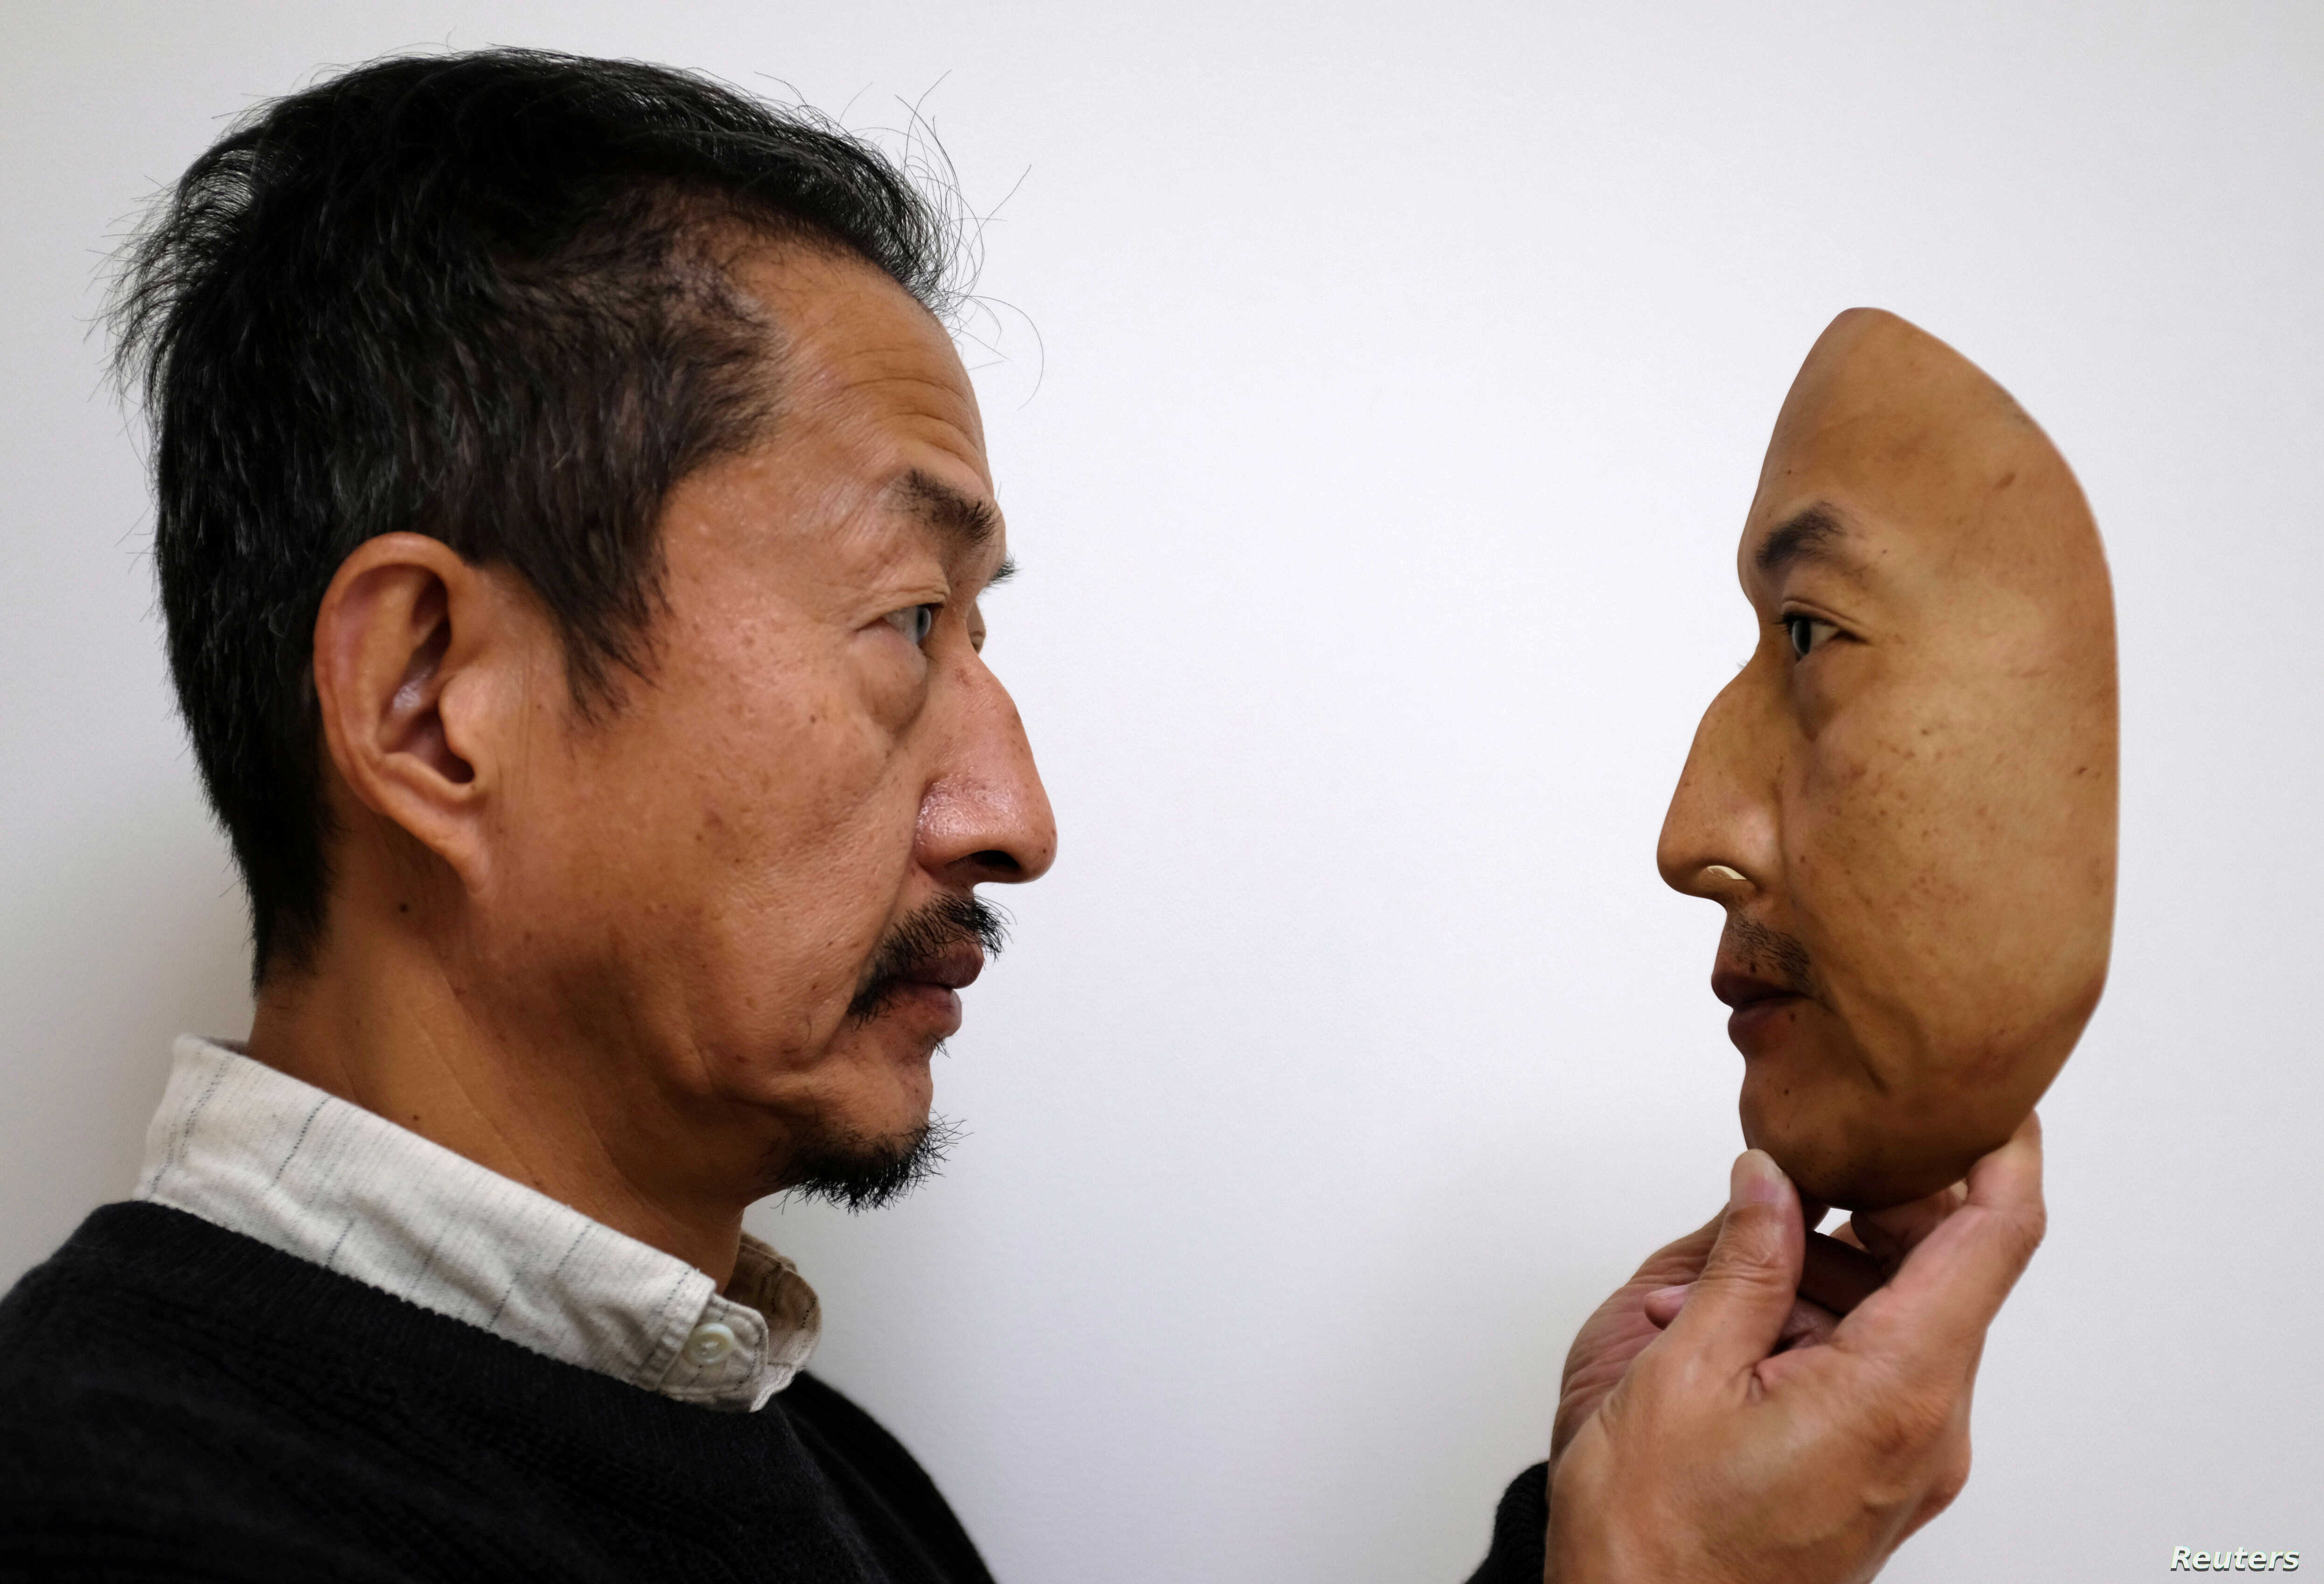 Realistic Masks Made in Japan Find Demand from Tech, Car Companies